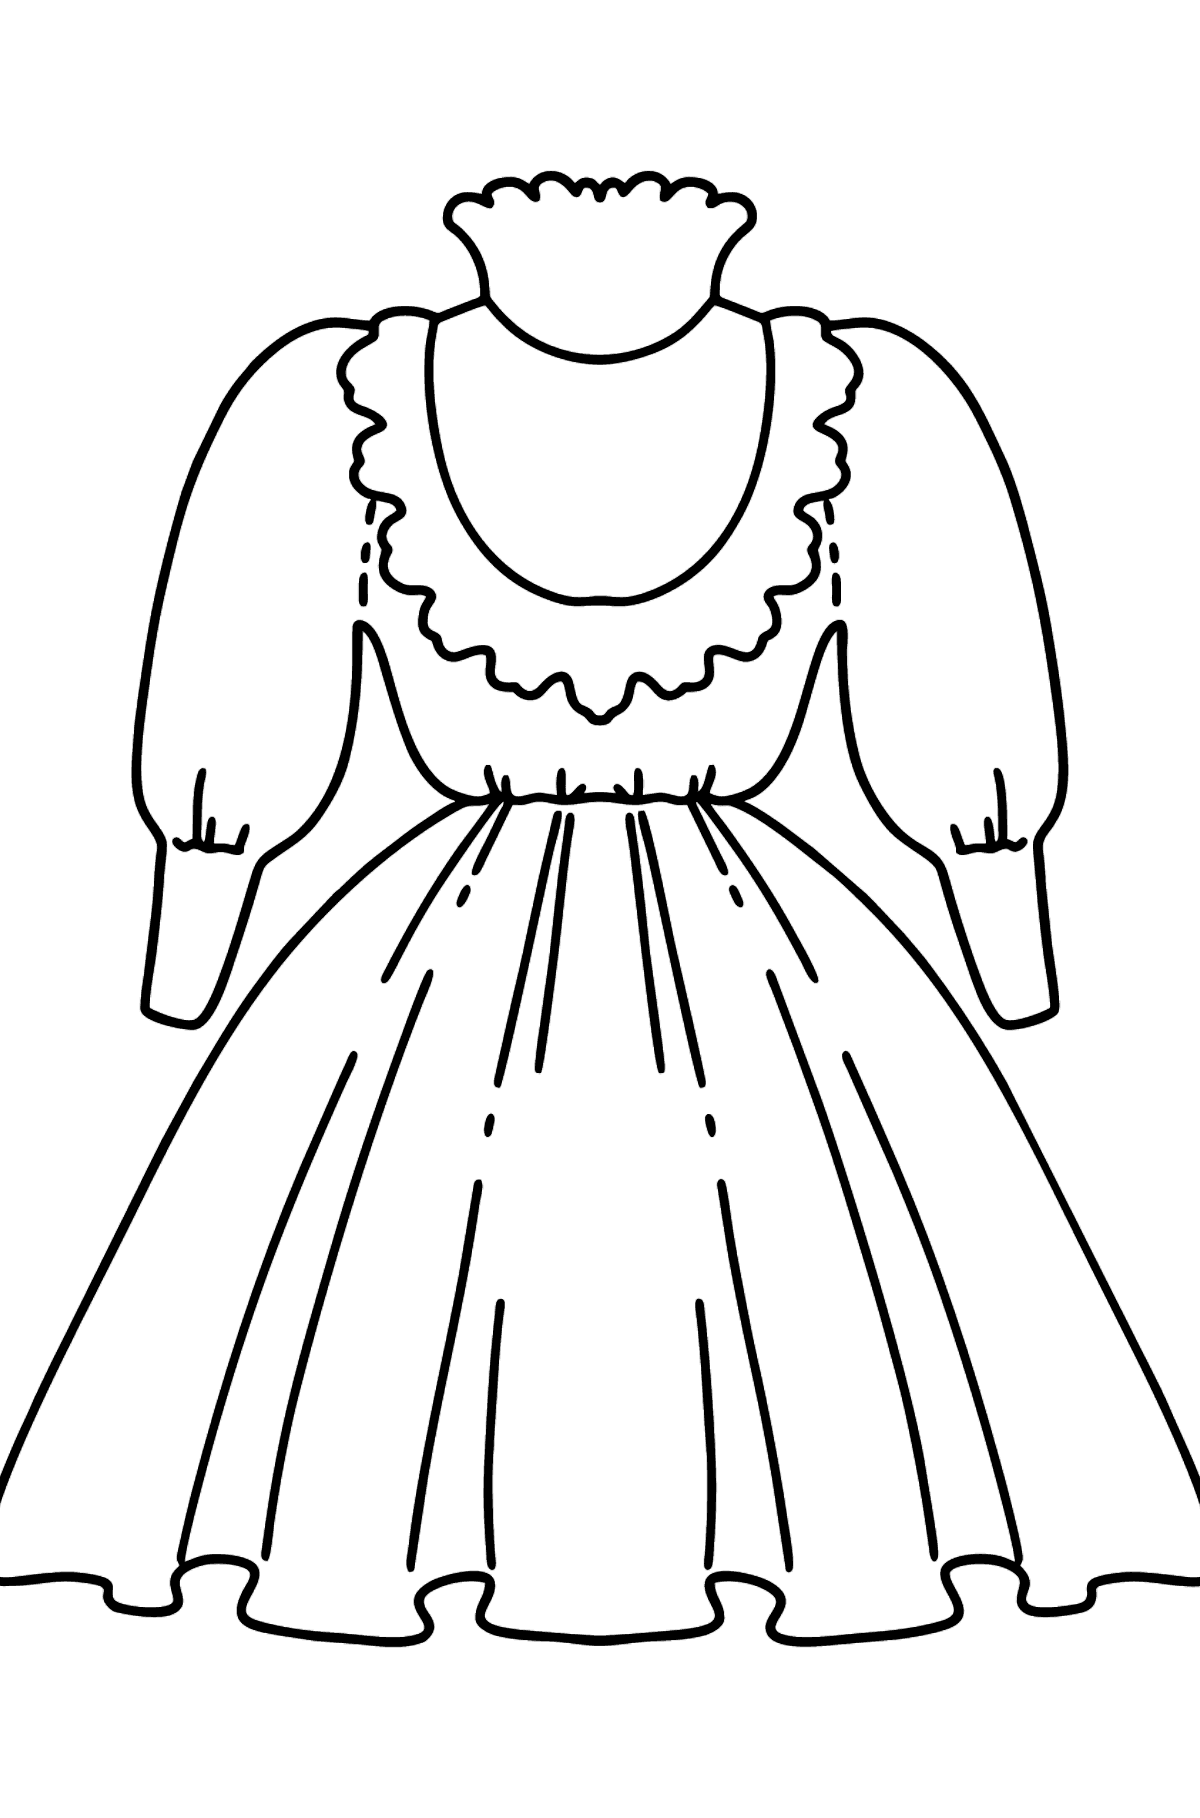 Beautiful Dress coloring page - Coloring Pages for Kids